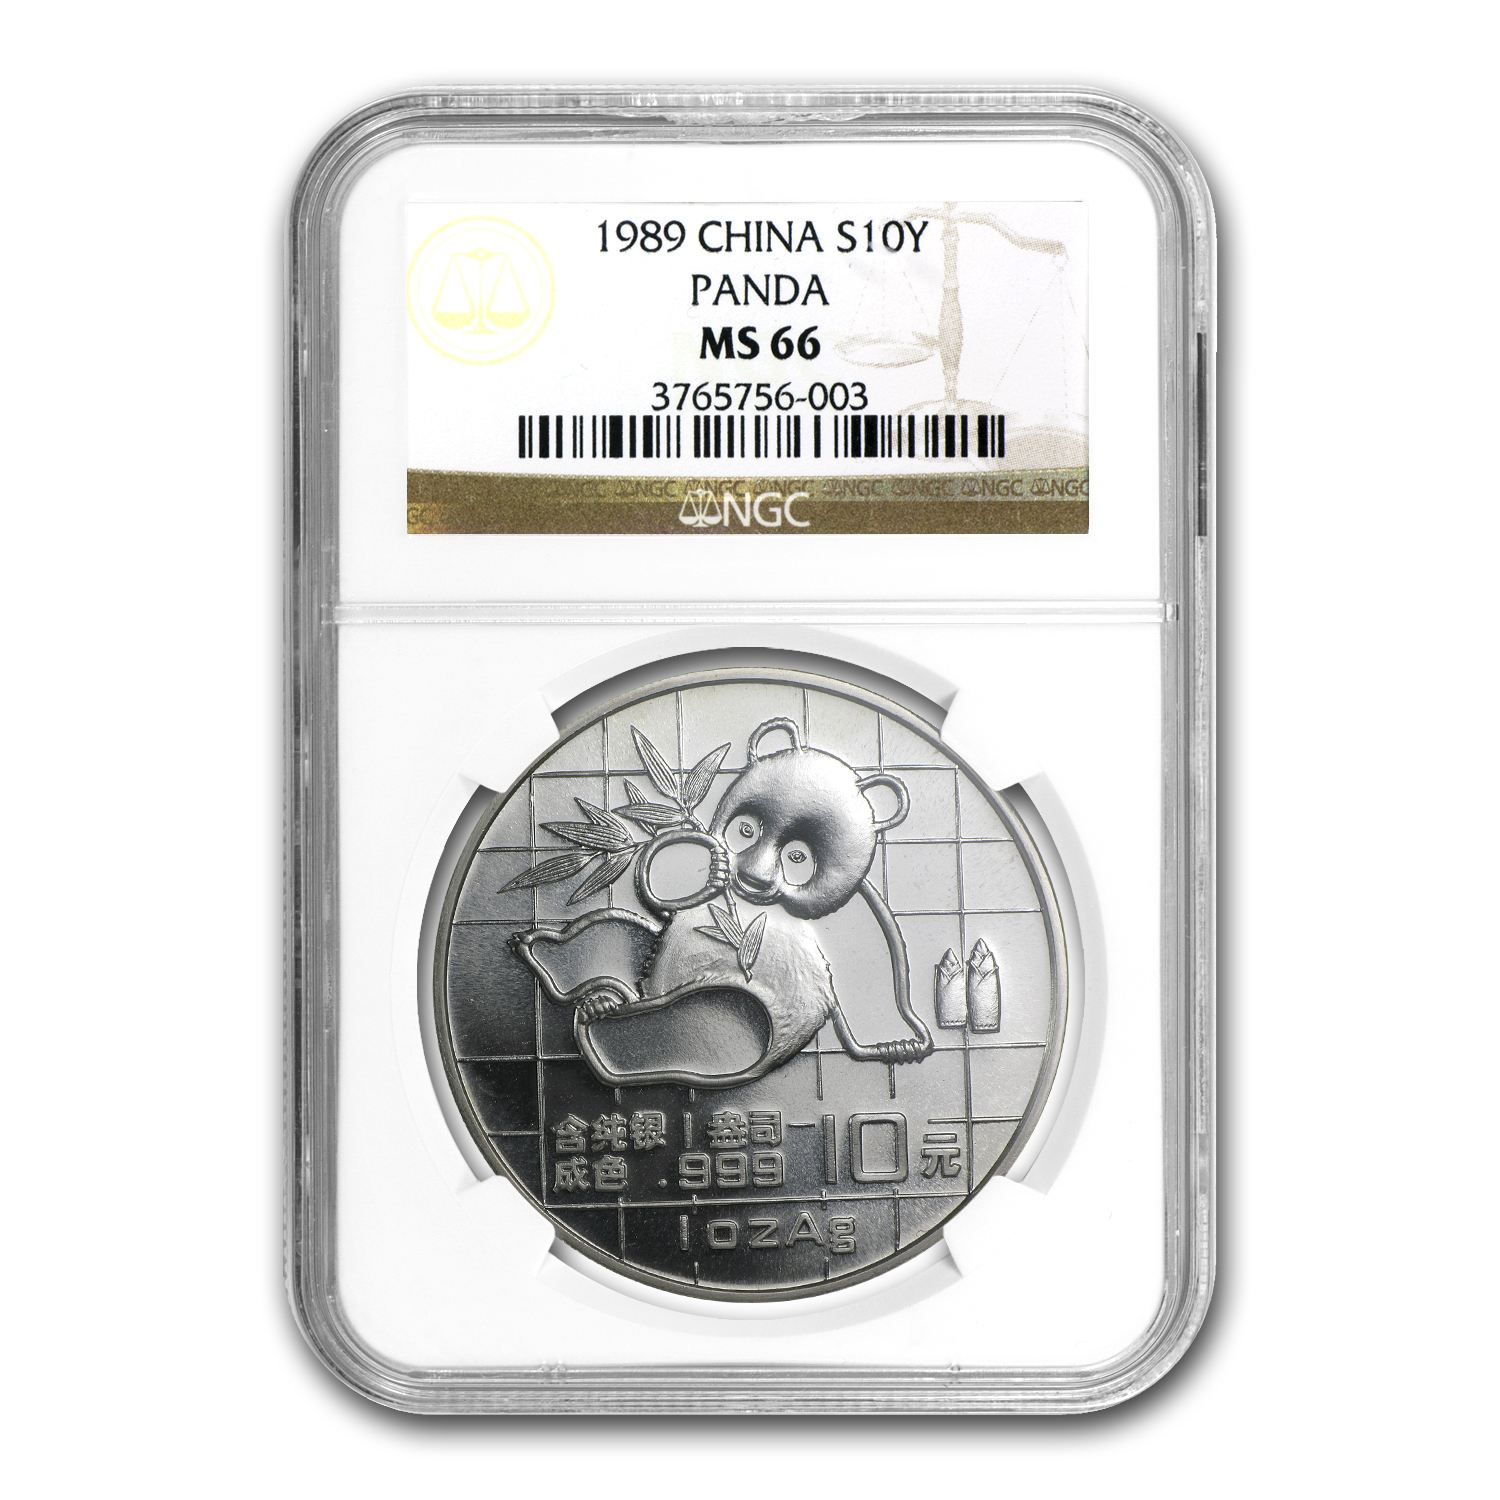 1989 China 1 oz Silver Panda MS-66 NGC